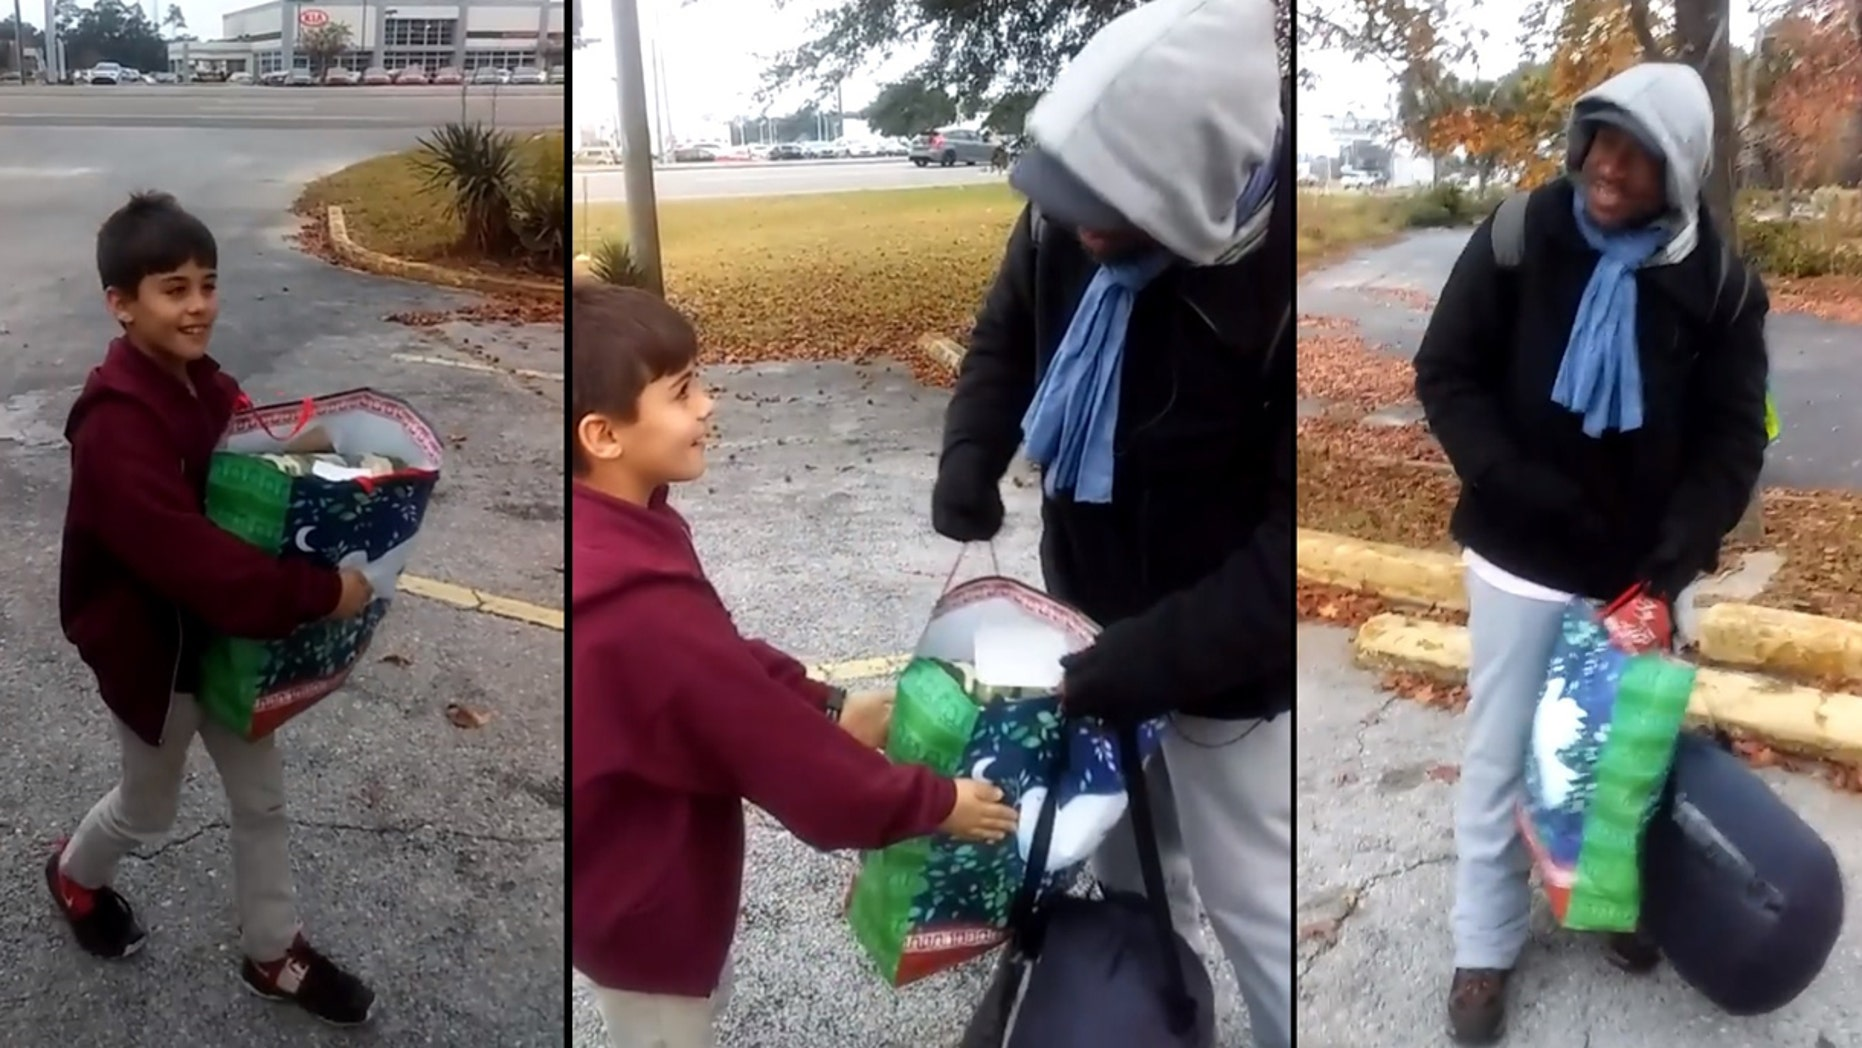 Dylandin Martin, 8, hands out Christmas gift bags to the homeless in Pensacola, Fla., after he said God put it on his heart.